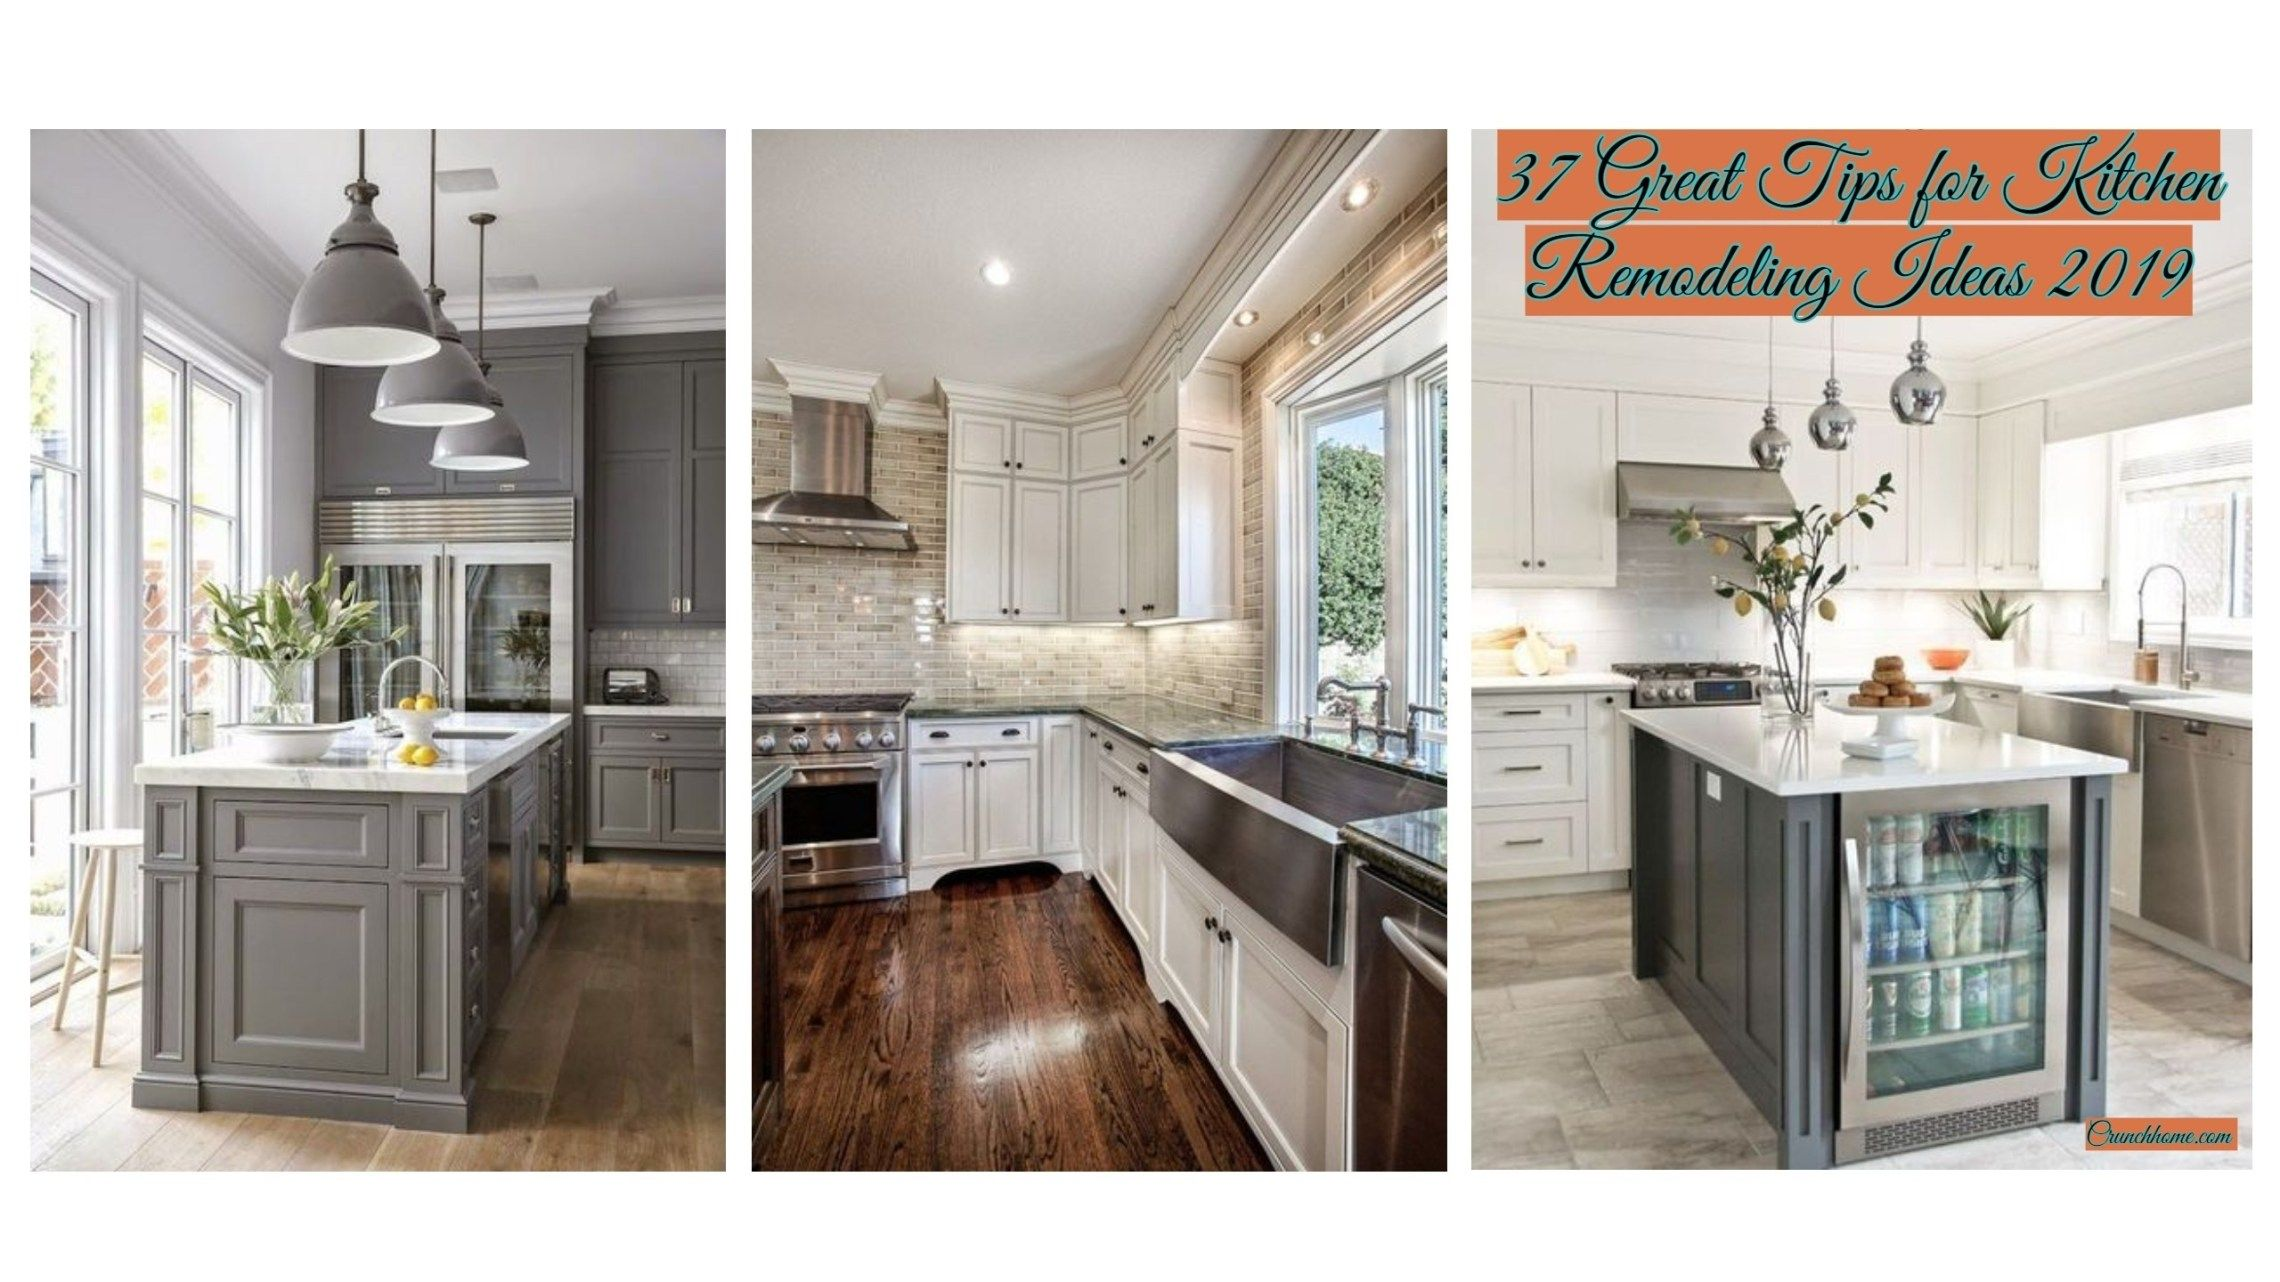 37 Great Tips For Kitchen Remodeling Ideas 2019 Kitchen Remodel Kitchen Remodeling Projects Kitchen Remodeling Companies